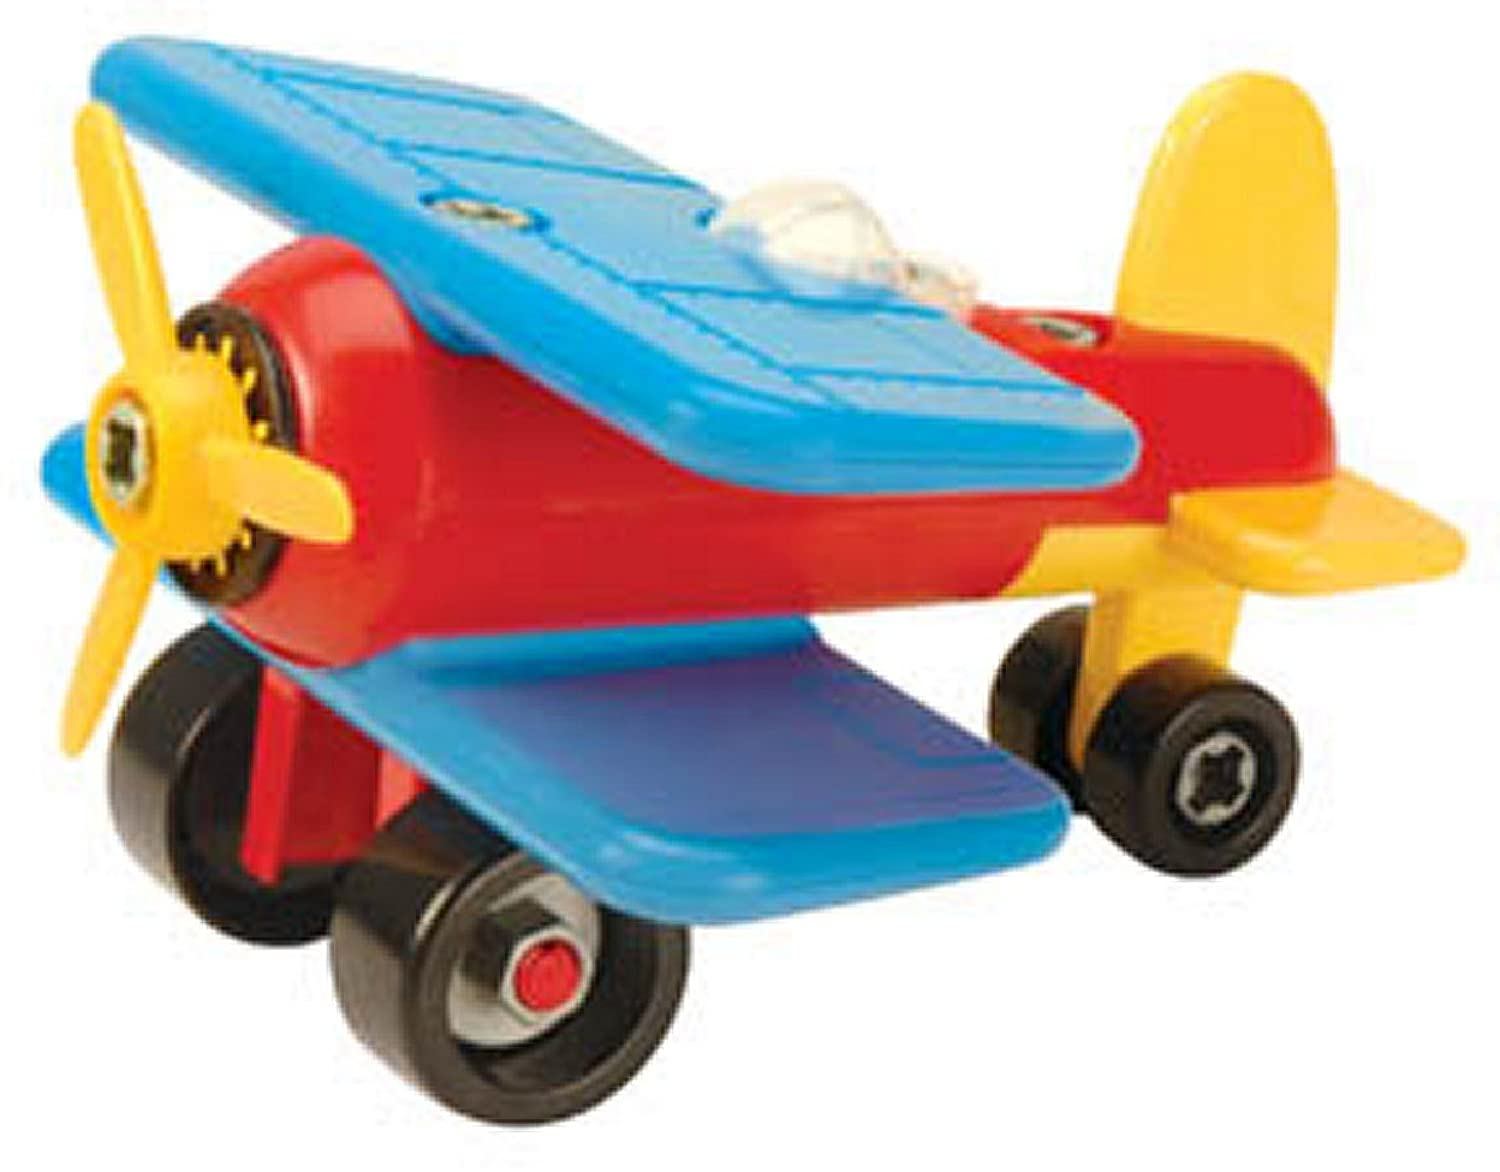 Toys For Boys 2 4 : Hot christmas gifts best toys for toddler boys age